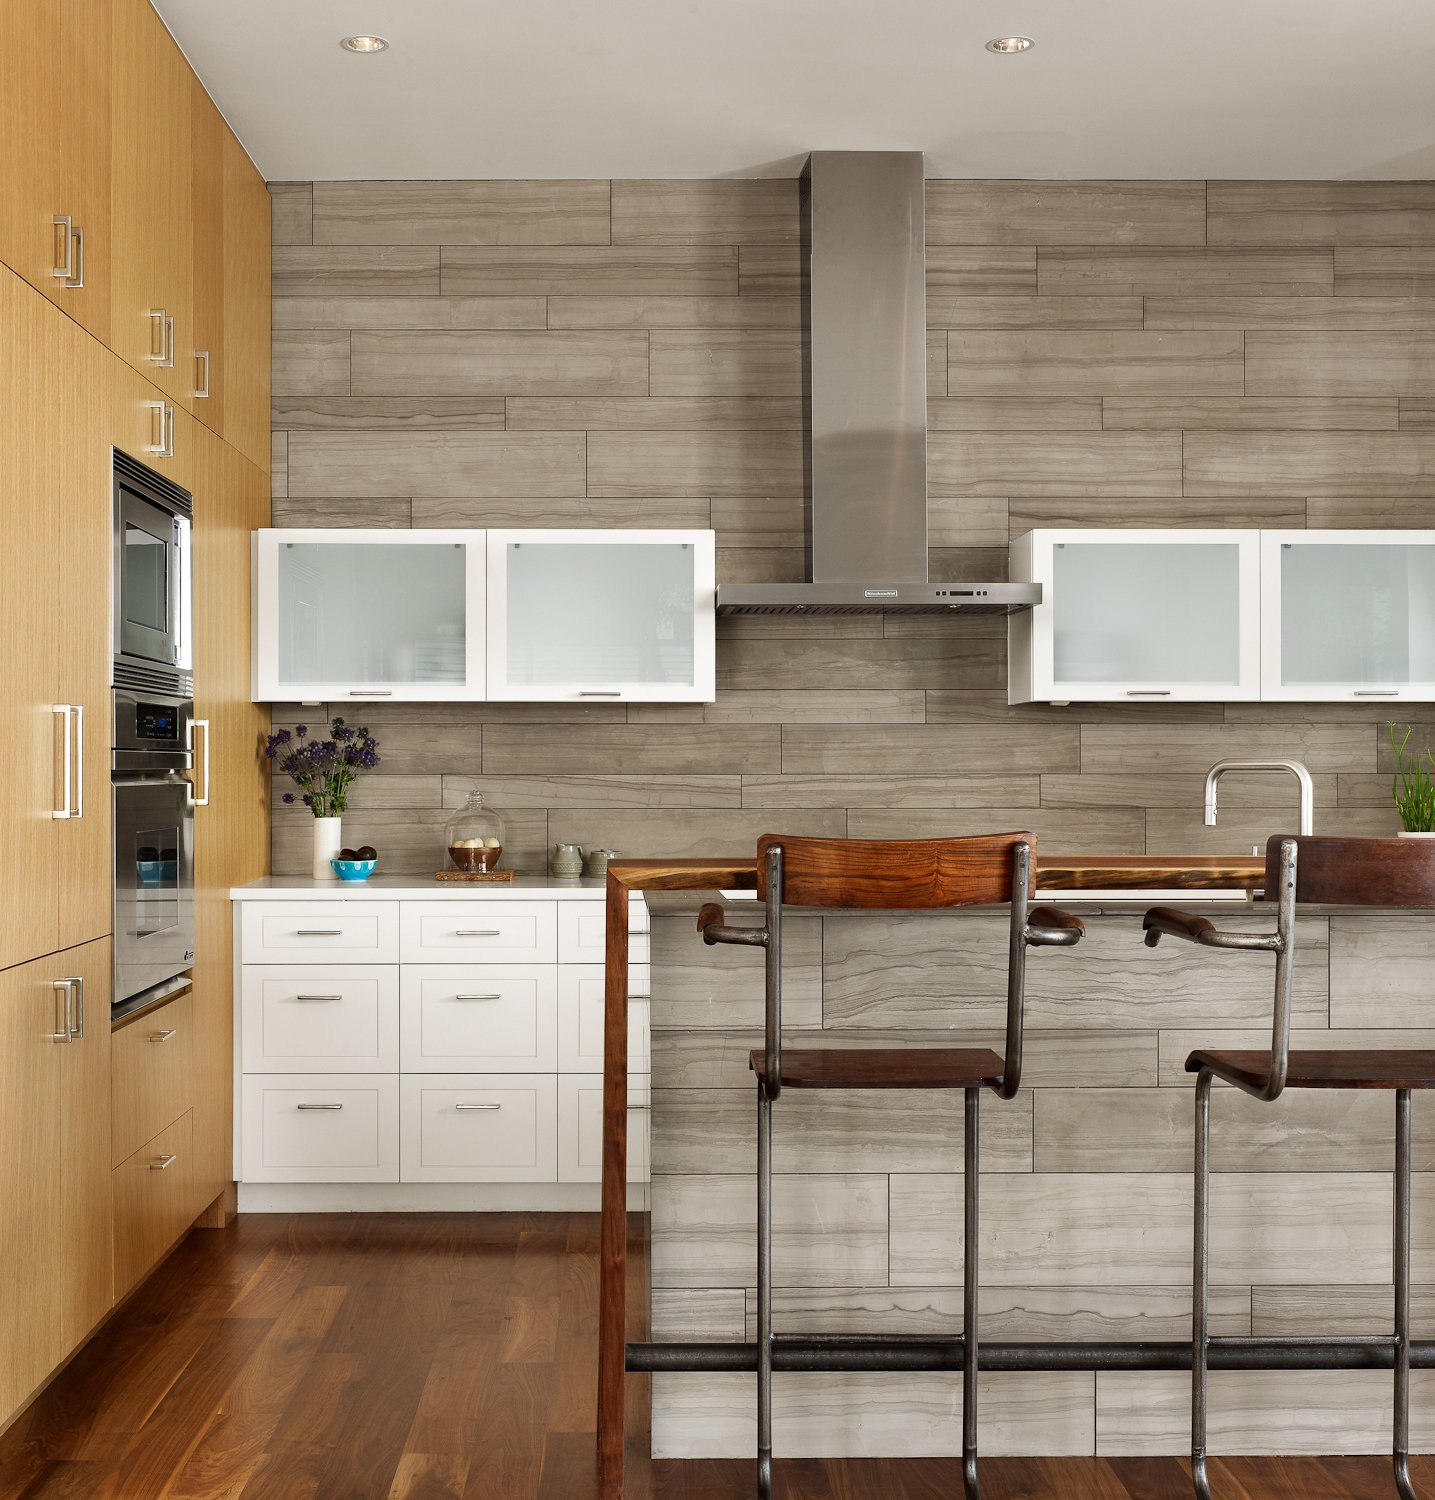 The Kitchen was designed with painted and natural wood finished cabinets.